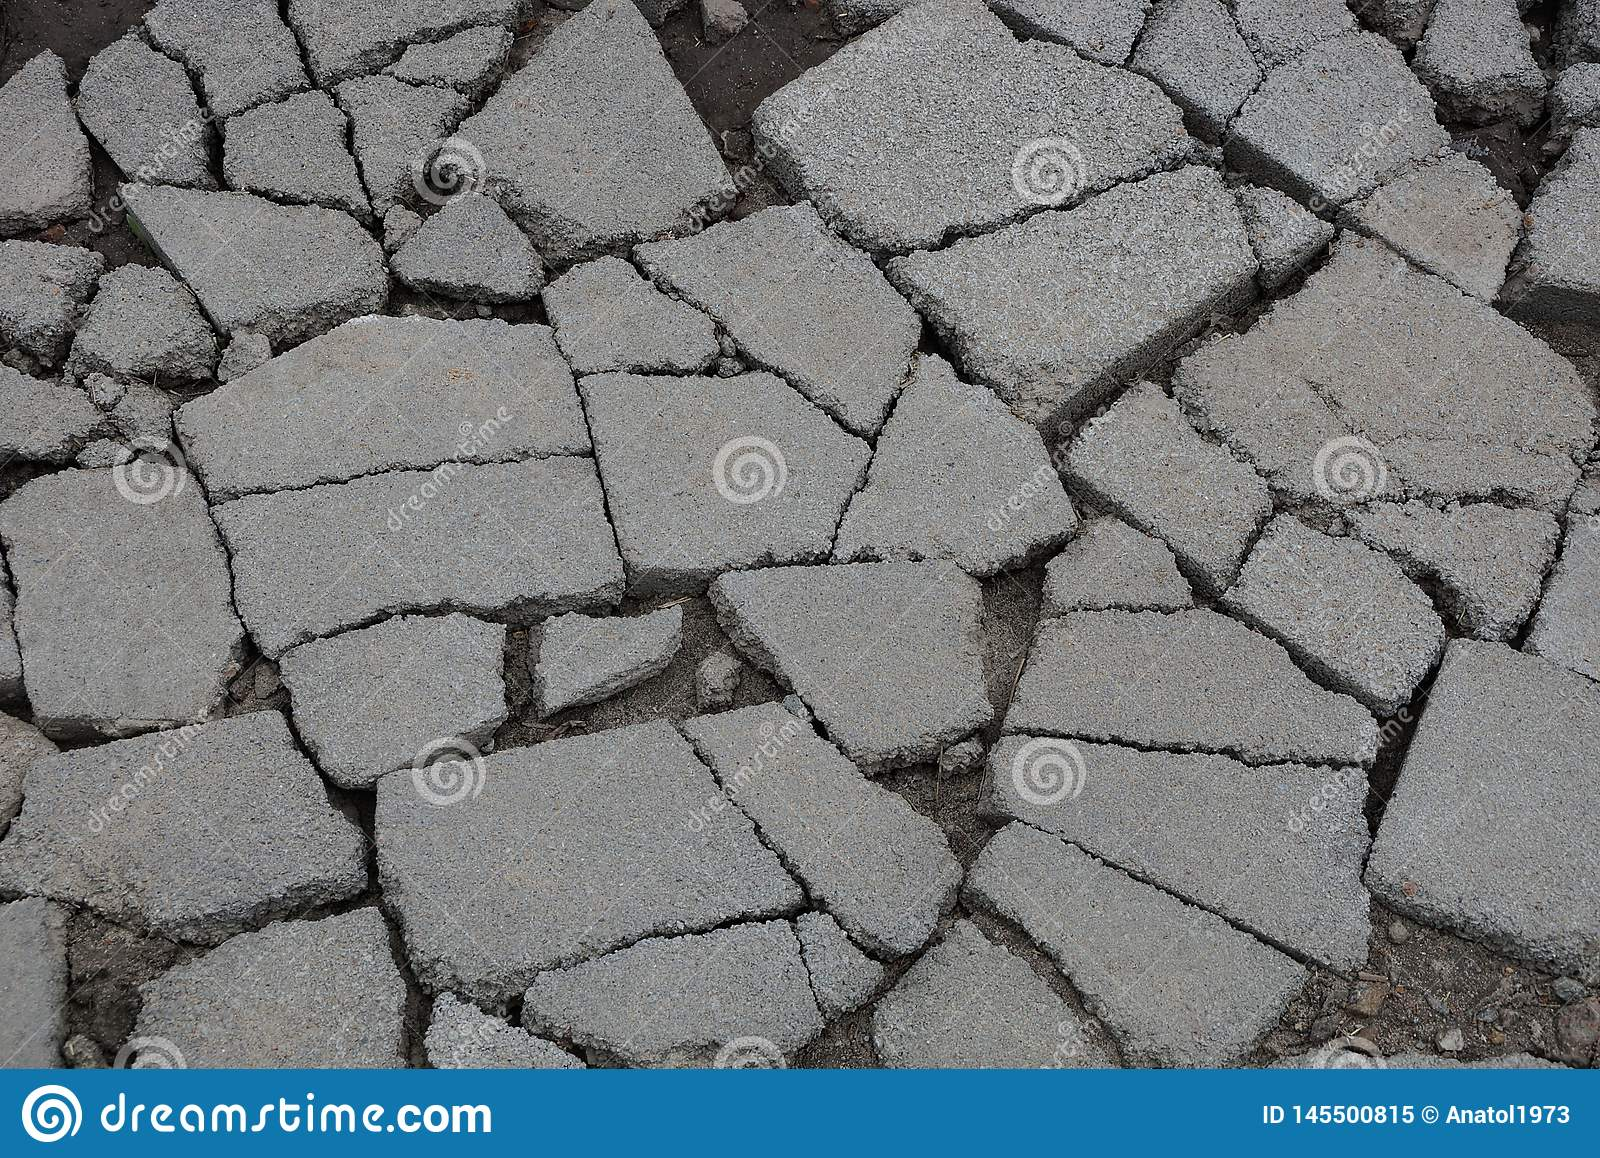 Gray stone texture of asphalt pieces with cracks on the road